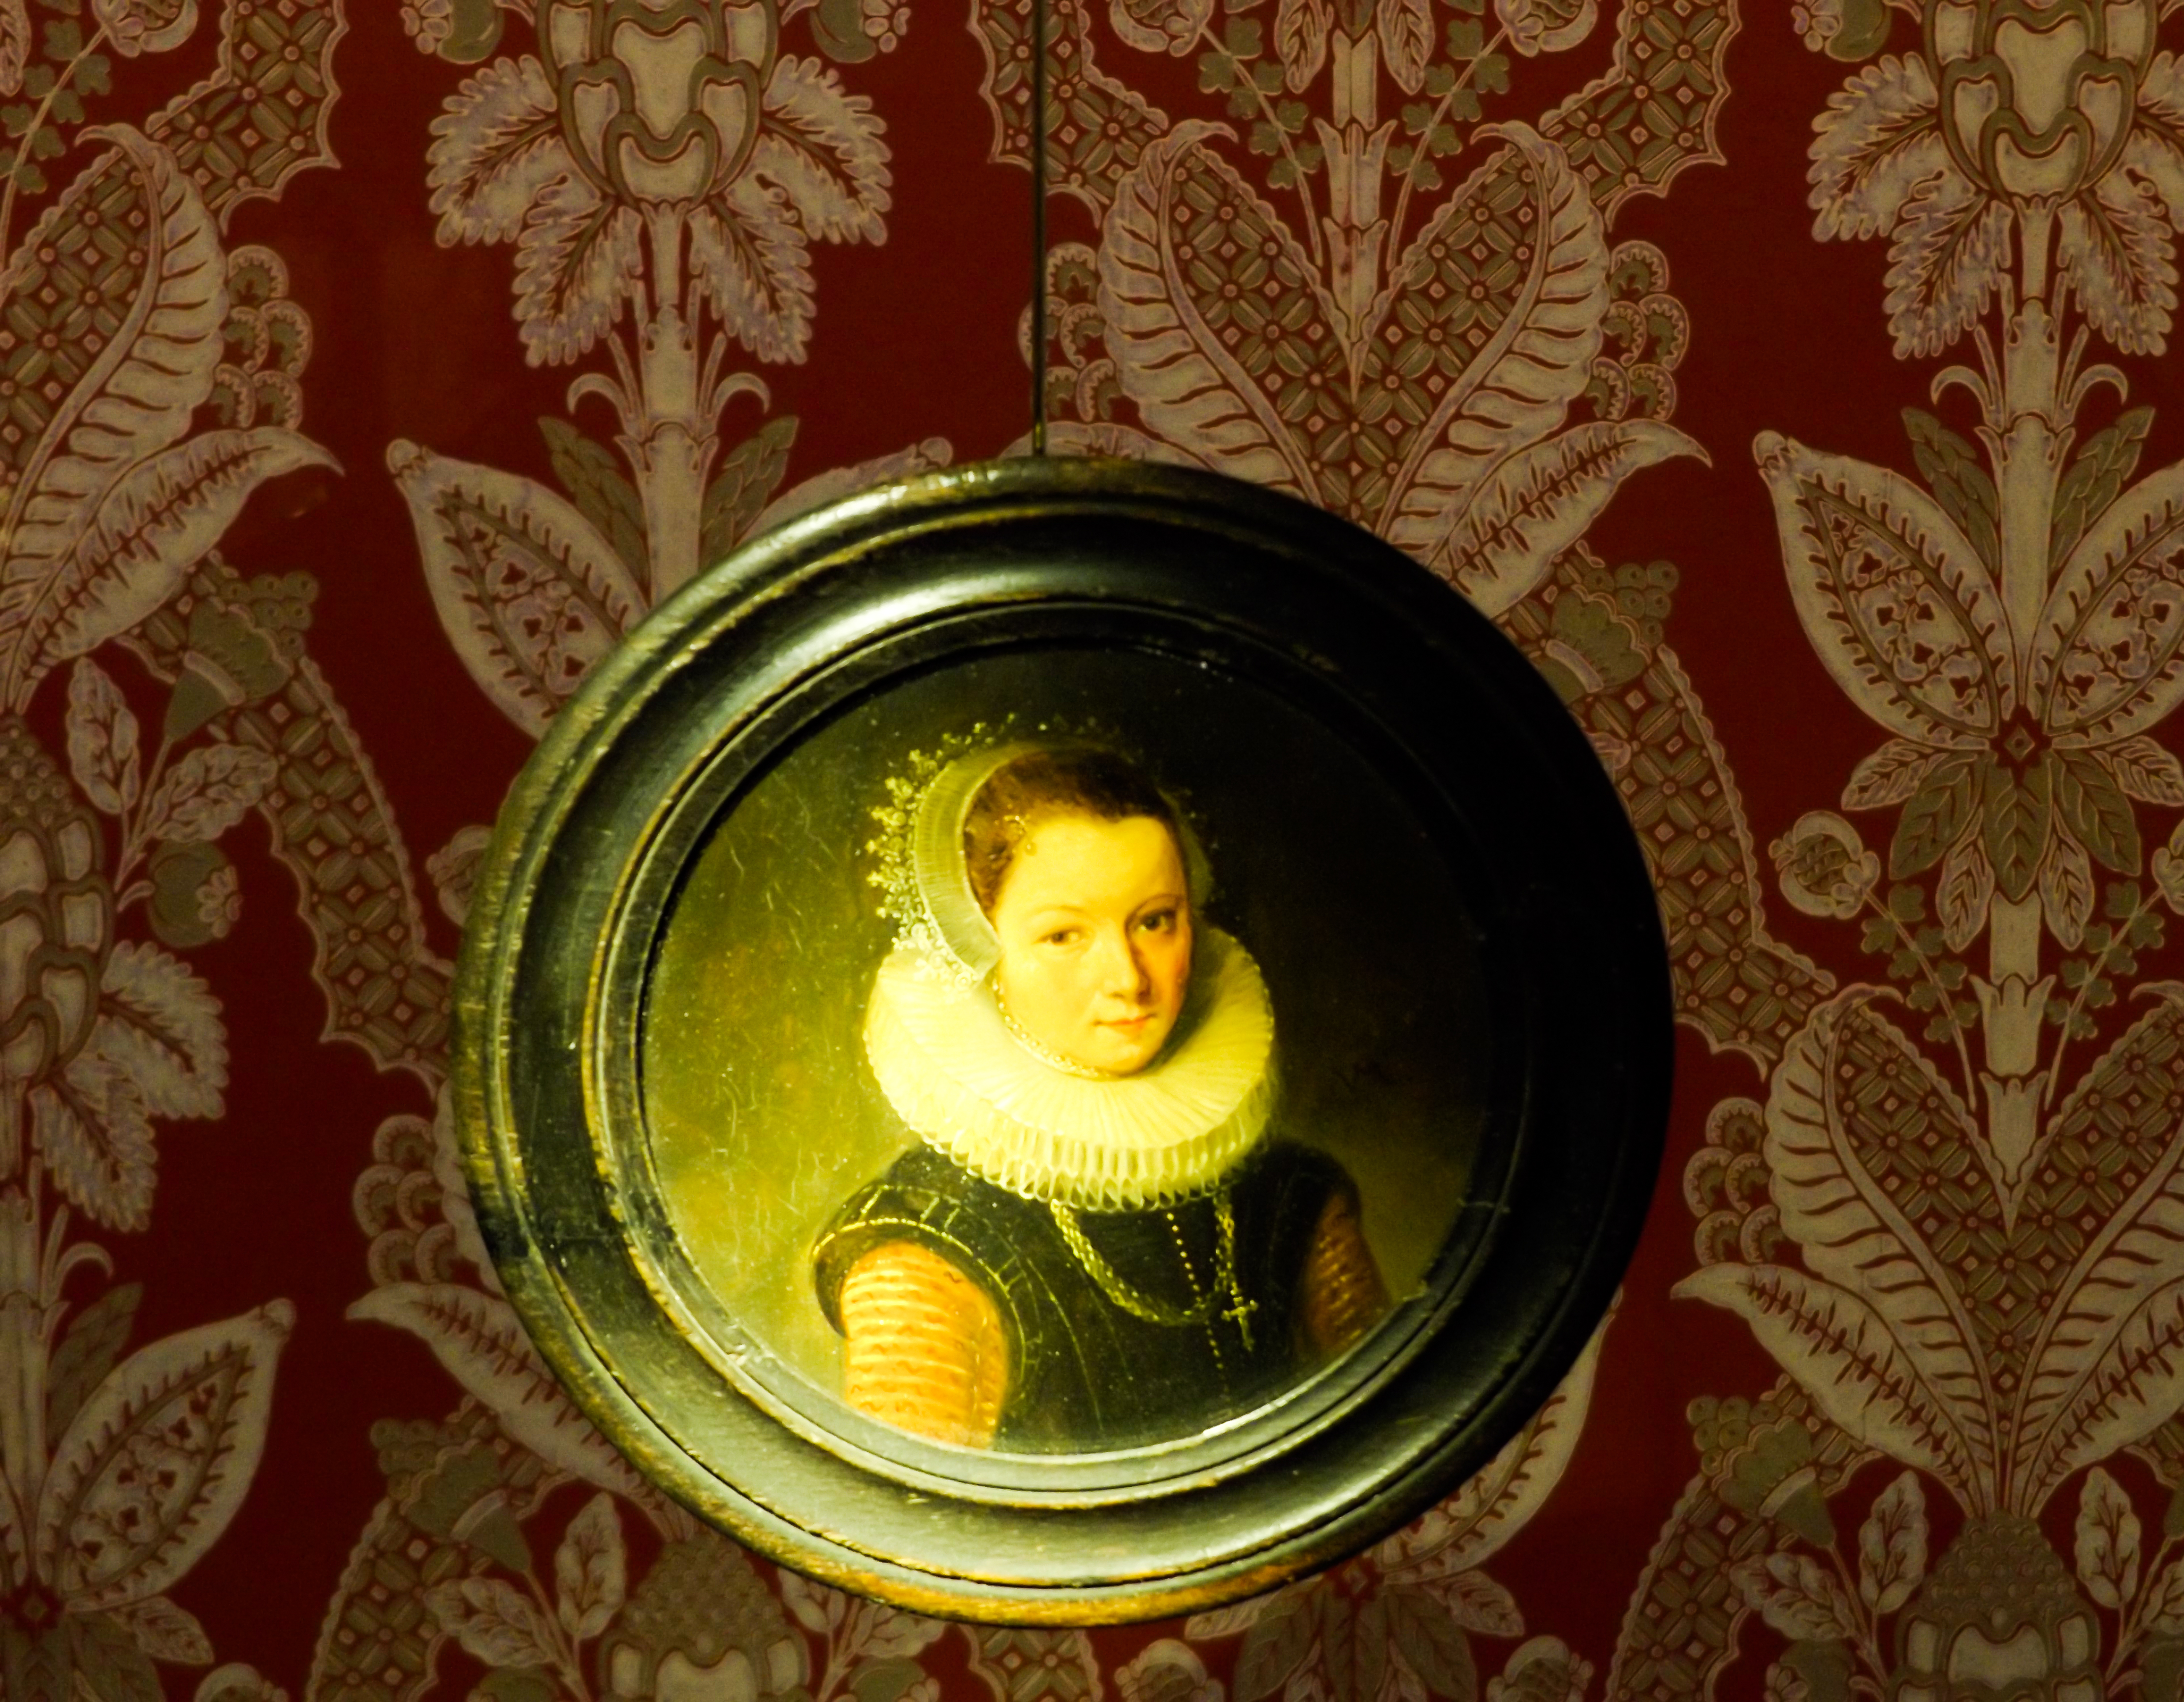 faf8cc202d0e1 File 18th-century portrait miniature.jpg - Wikimedia Commons